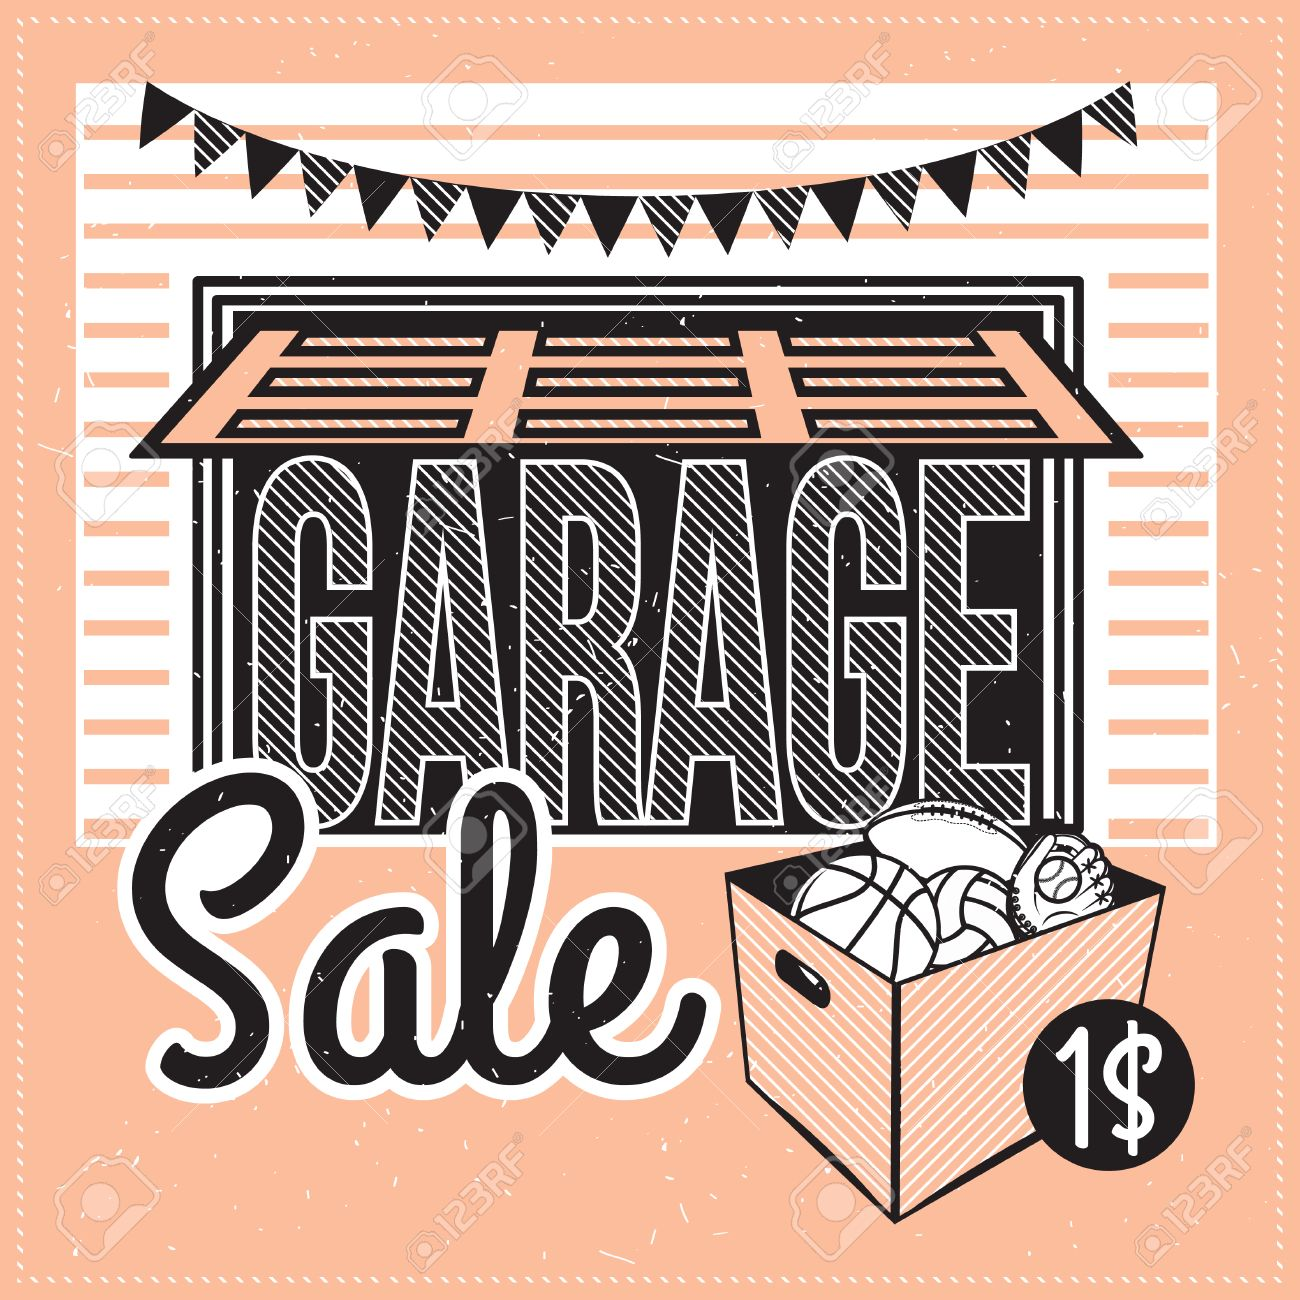 Garage Or Yard Sale With Signs, Box And Household Items. Vintage ...